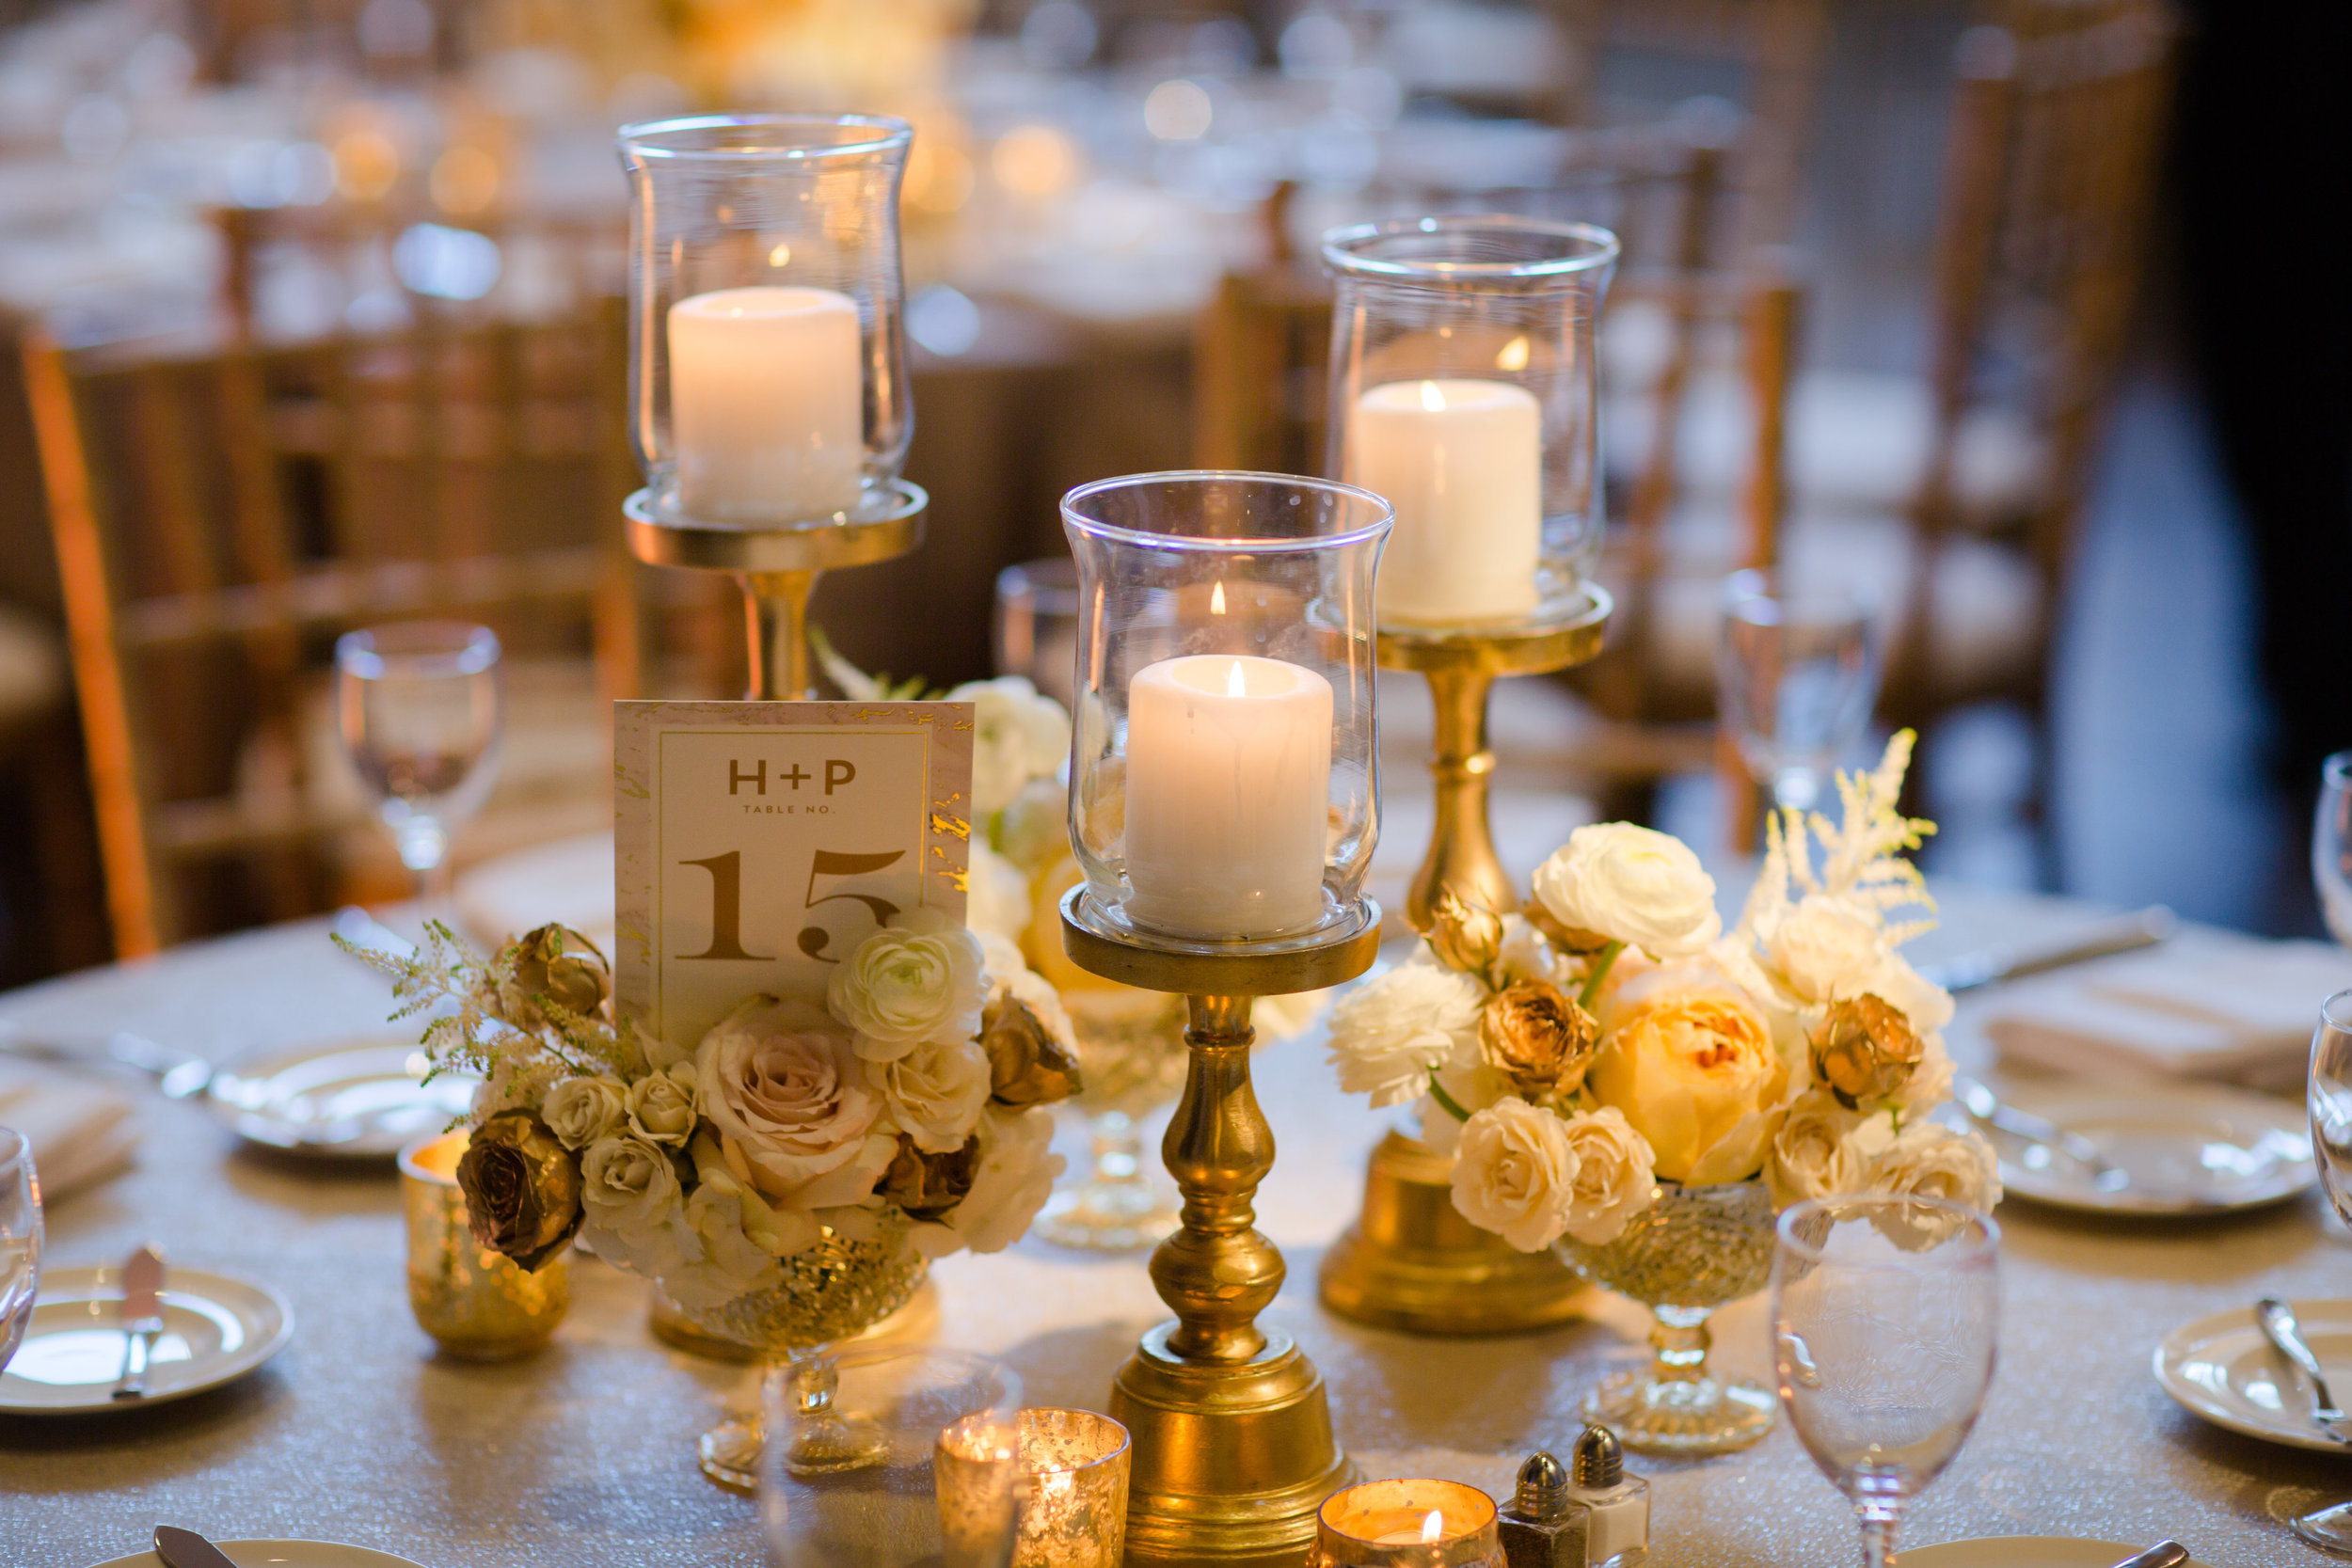 Fleur-Inc-Chicago-Wedding-19-East-Studio-This-Is-Photography-Wedding-Party-Bouquets-candle-centerpiece